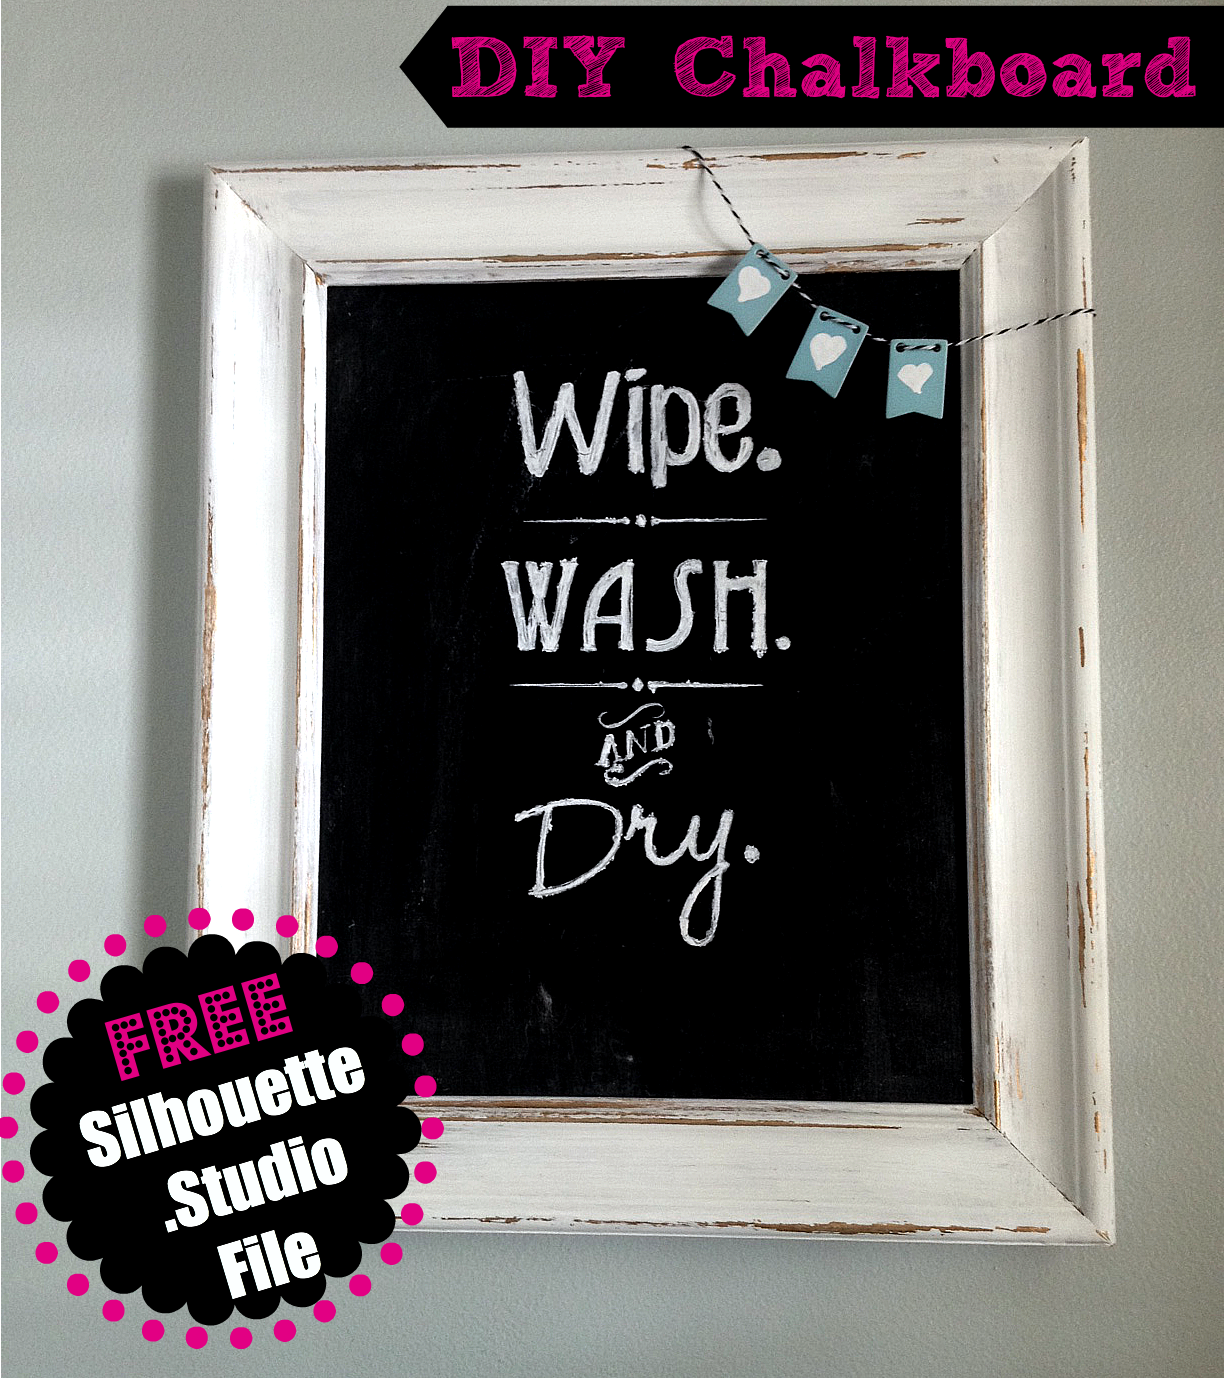 Bathroom quotes, wall art, chalkboard, free Silhouette cut file